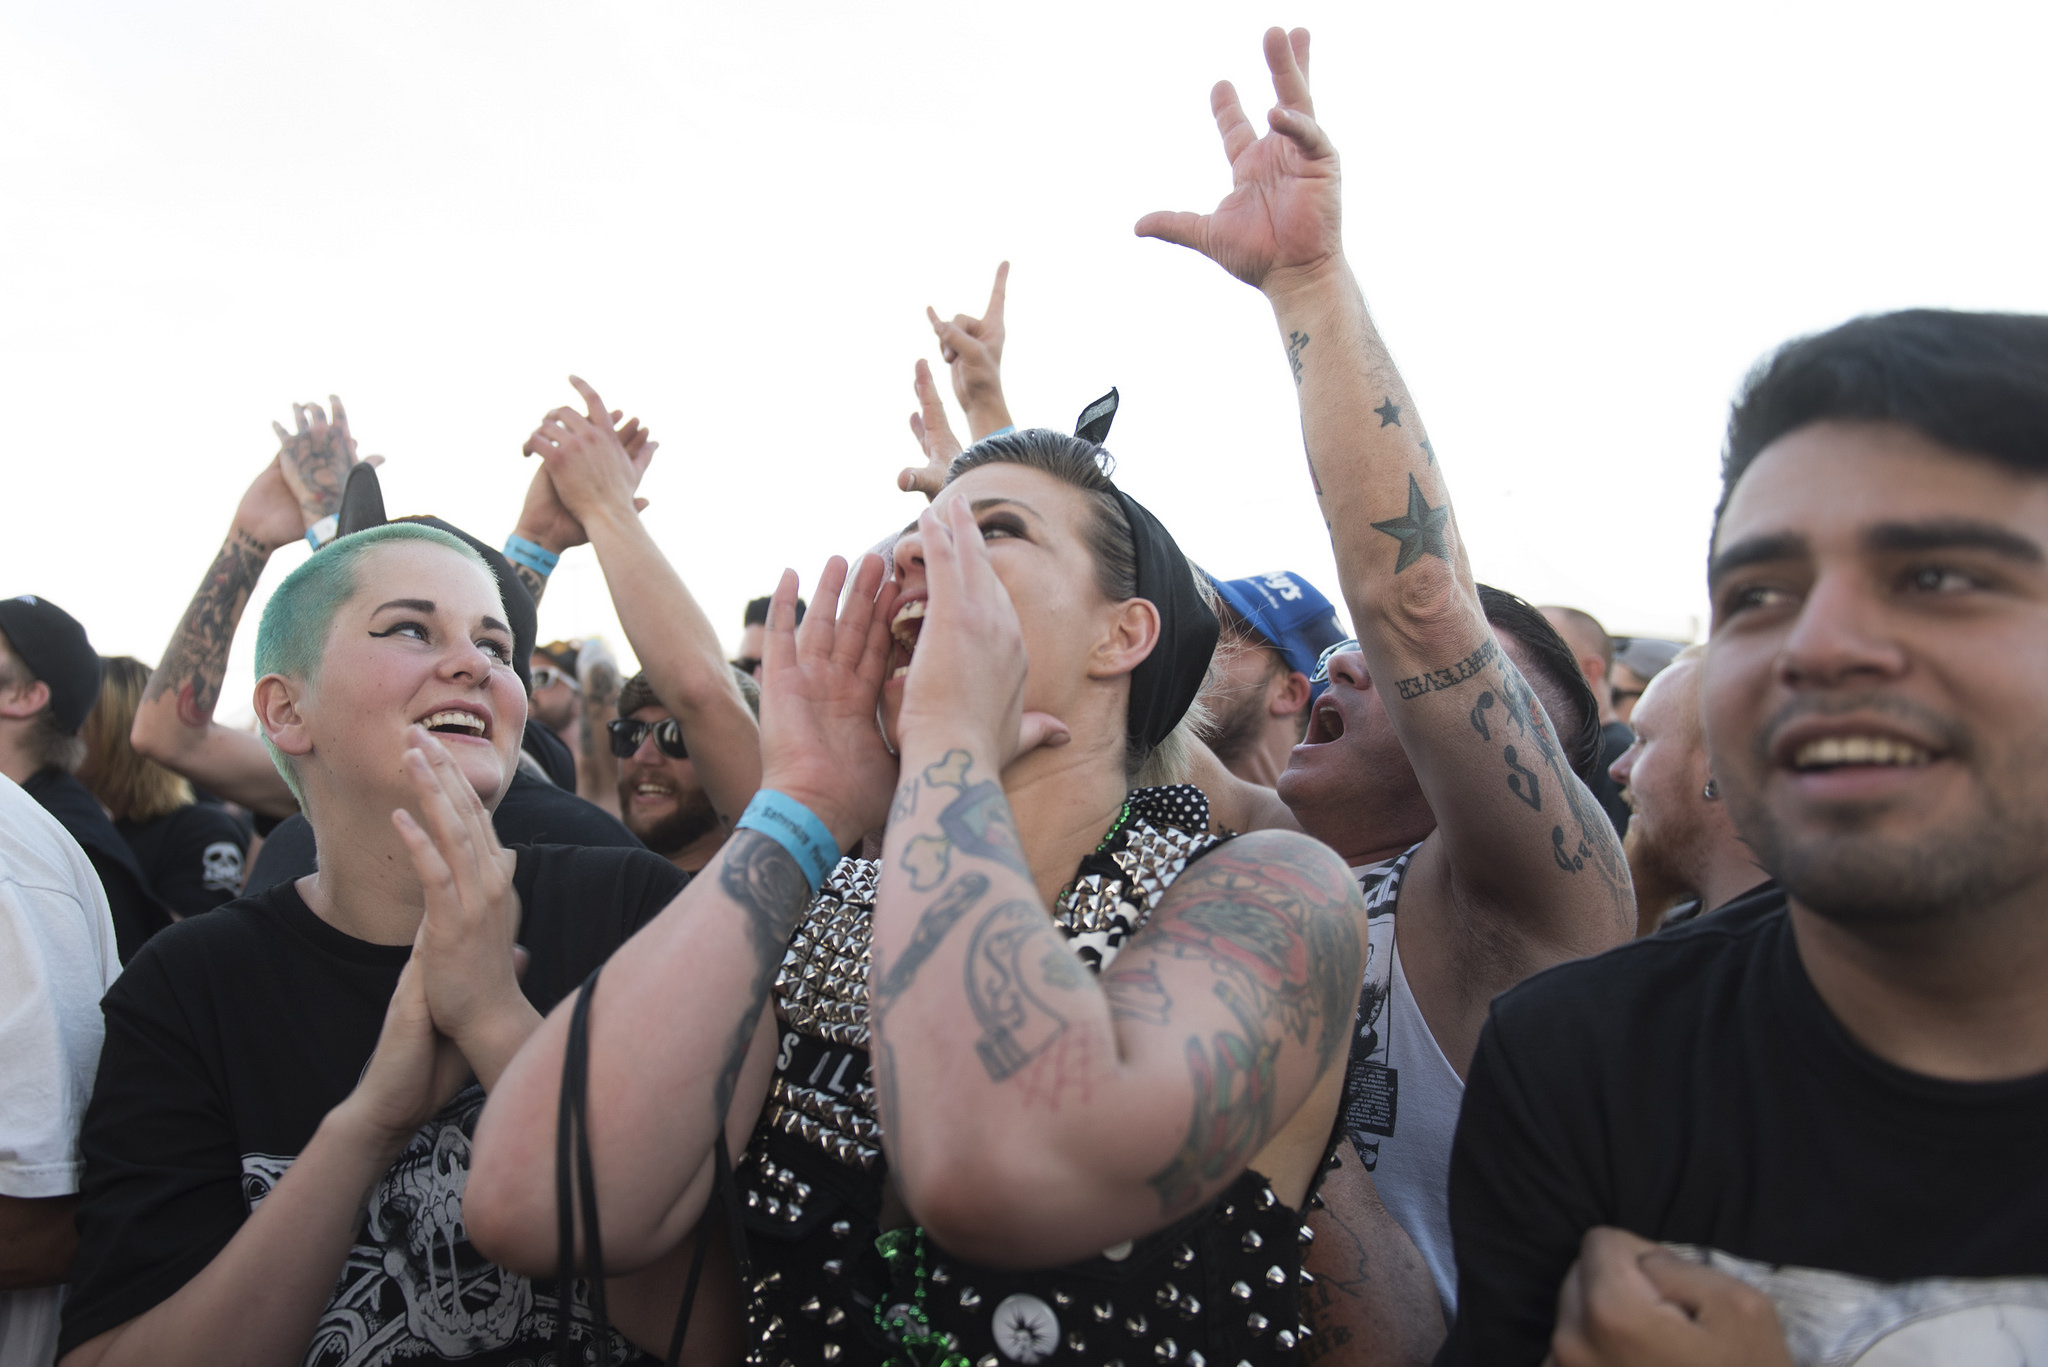 Festivalgoers sing along as The Bronx performs during the 18th annual Punk Rock Bowling & Music Festival in downtown Las Vegas Saturday, May 28, 2016.